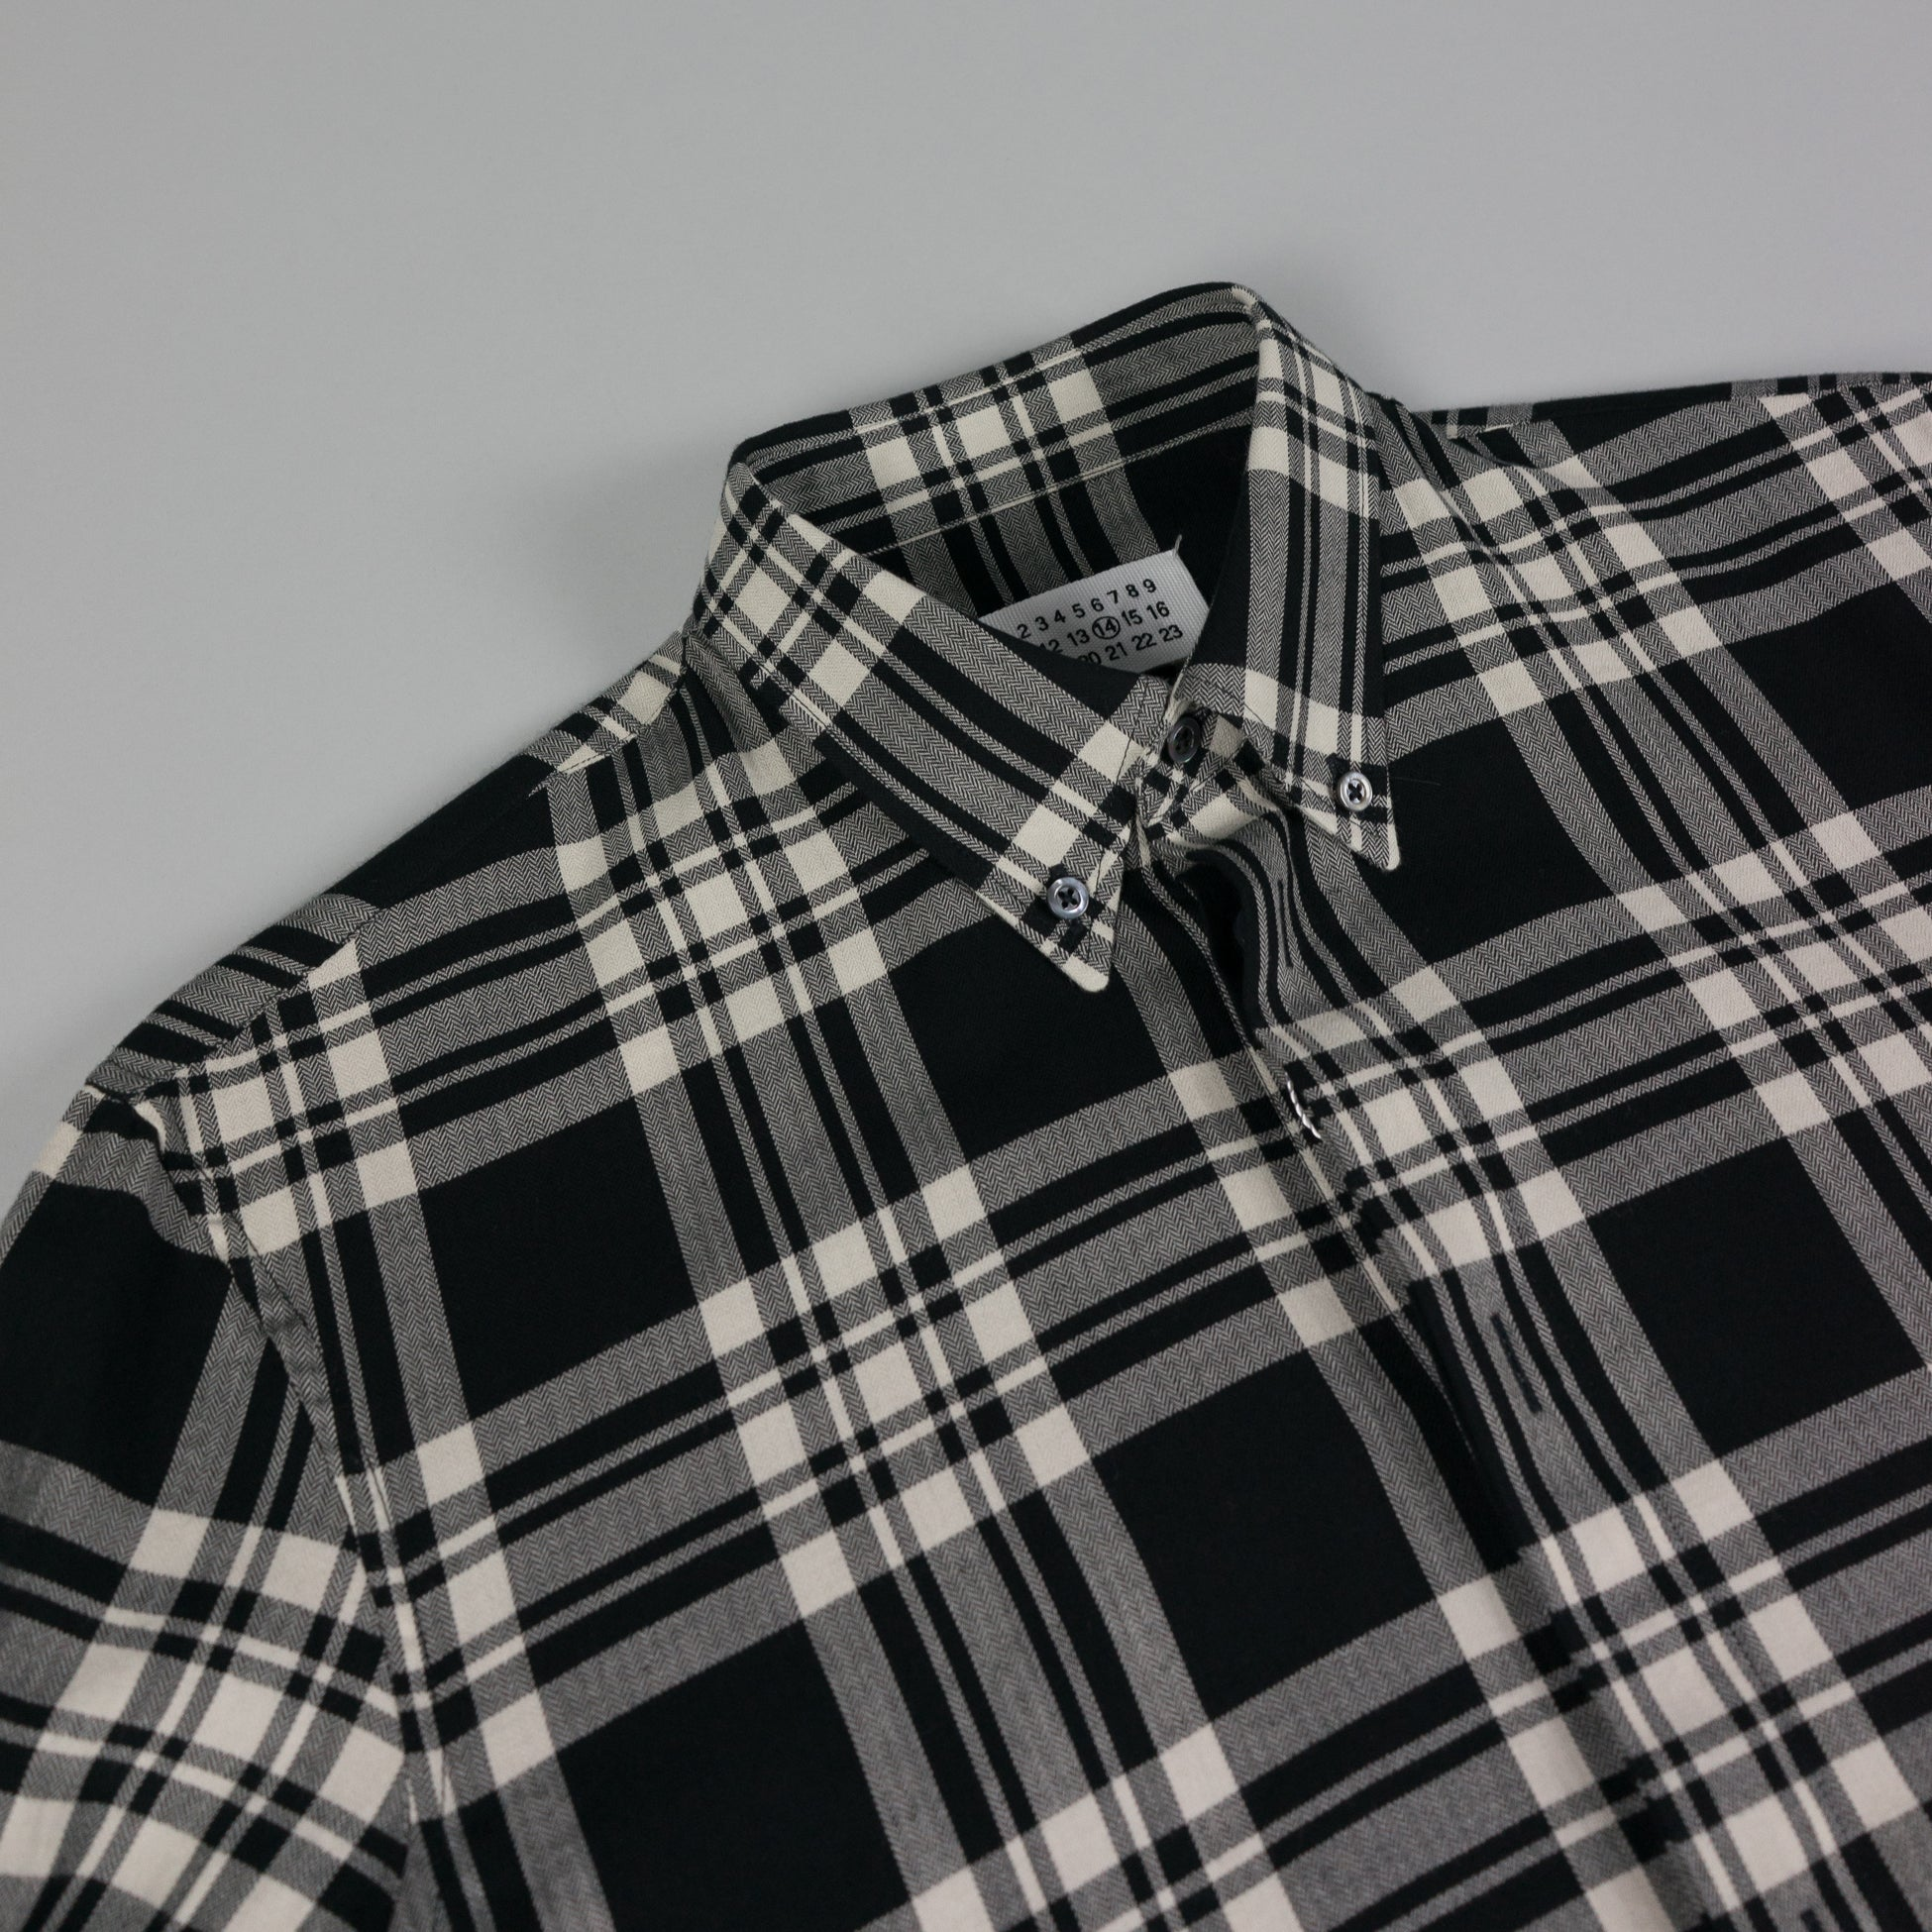 Collar detail of Check Button Shirt by French Designer Maison Margiela